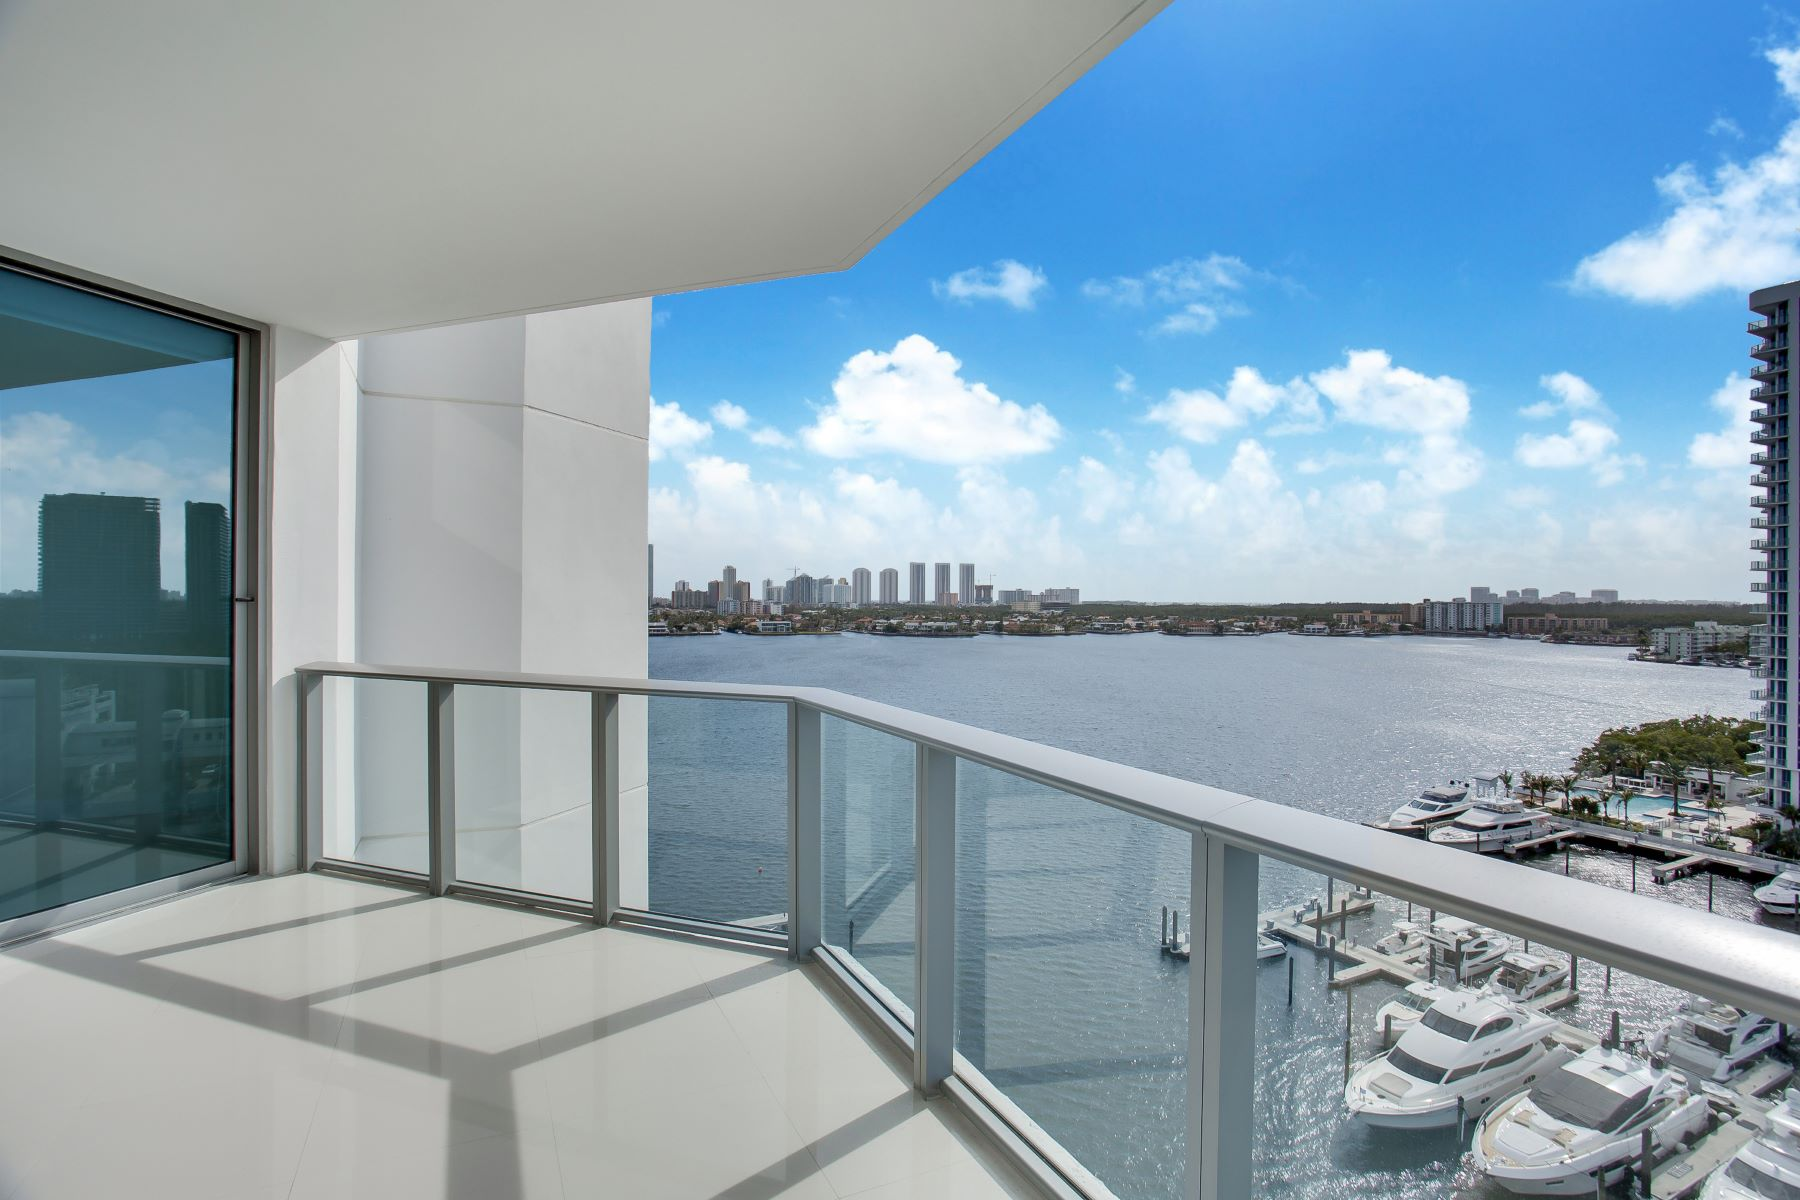 condominiums for Active at 17301 Biscayne Boulevard #1103 17301 Biscayne Boulevard 1103 North Miami Beach, Florida 33160 United States